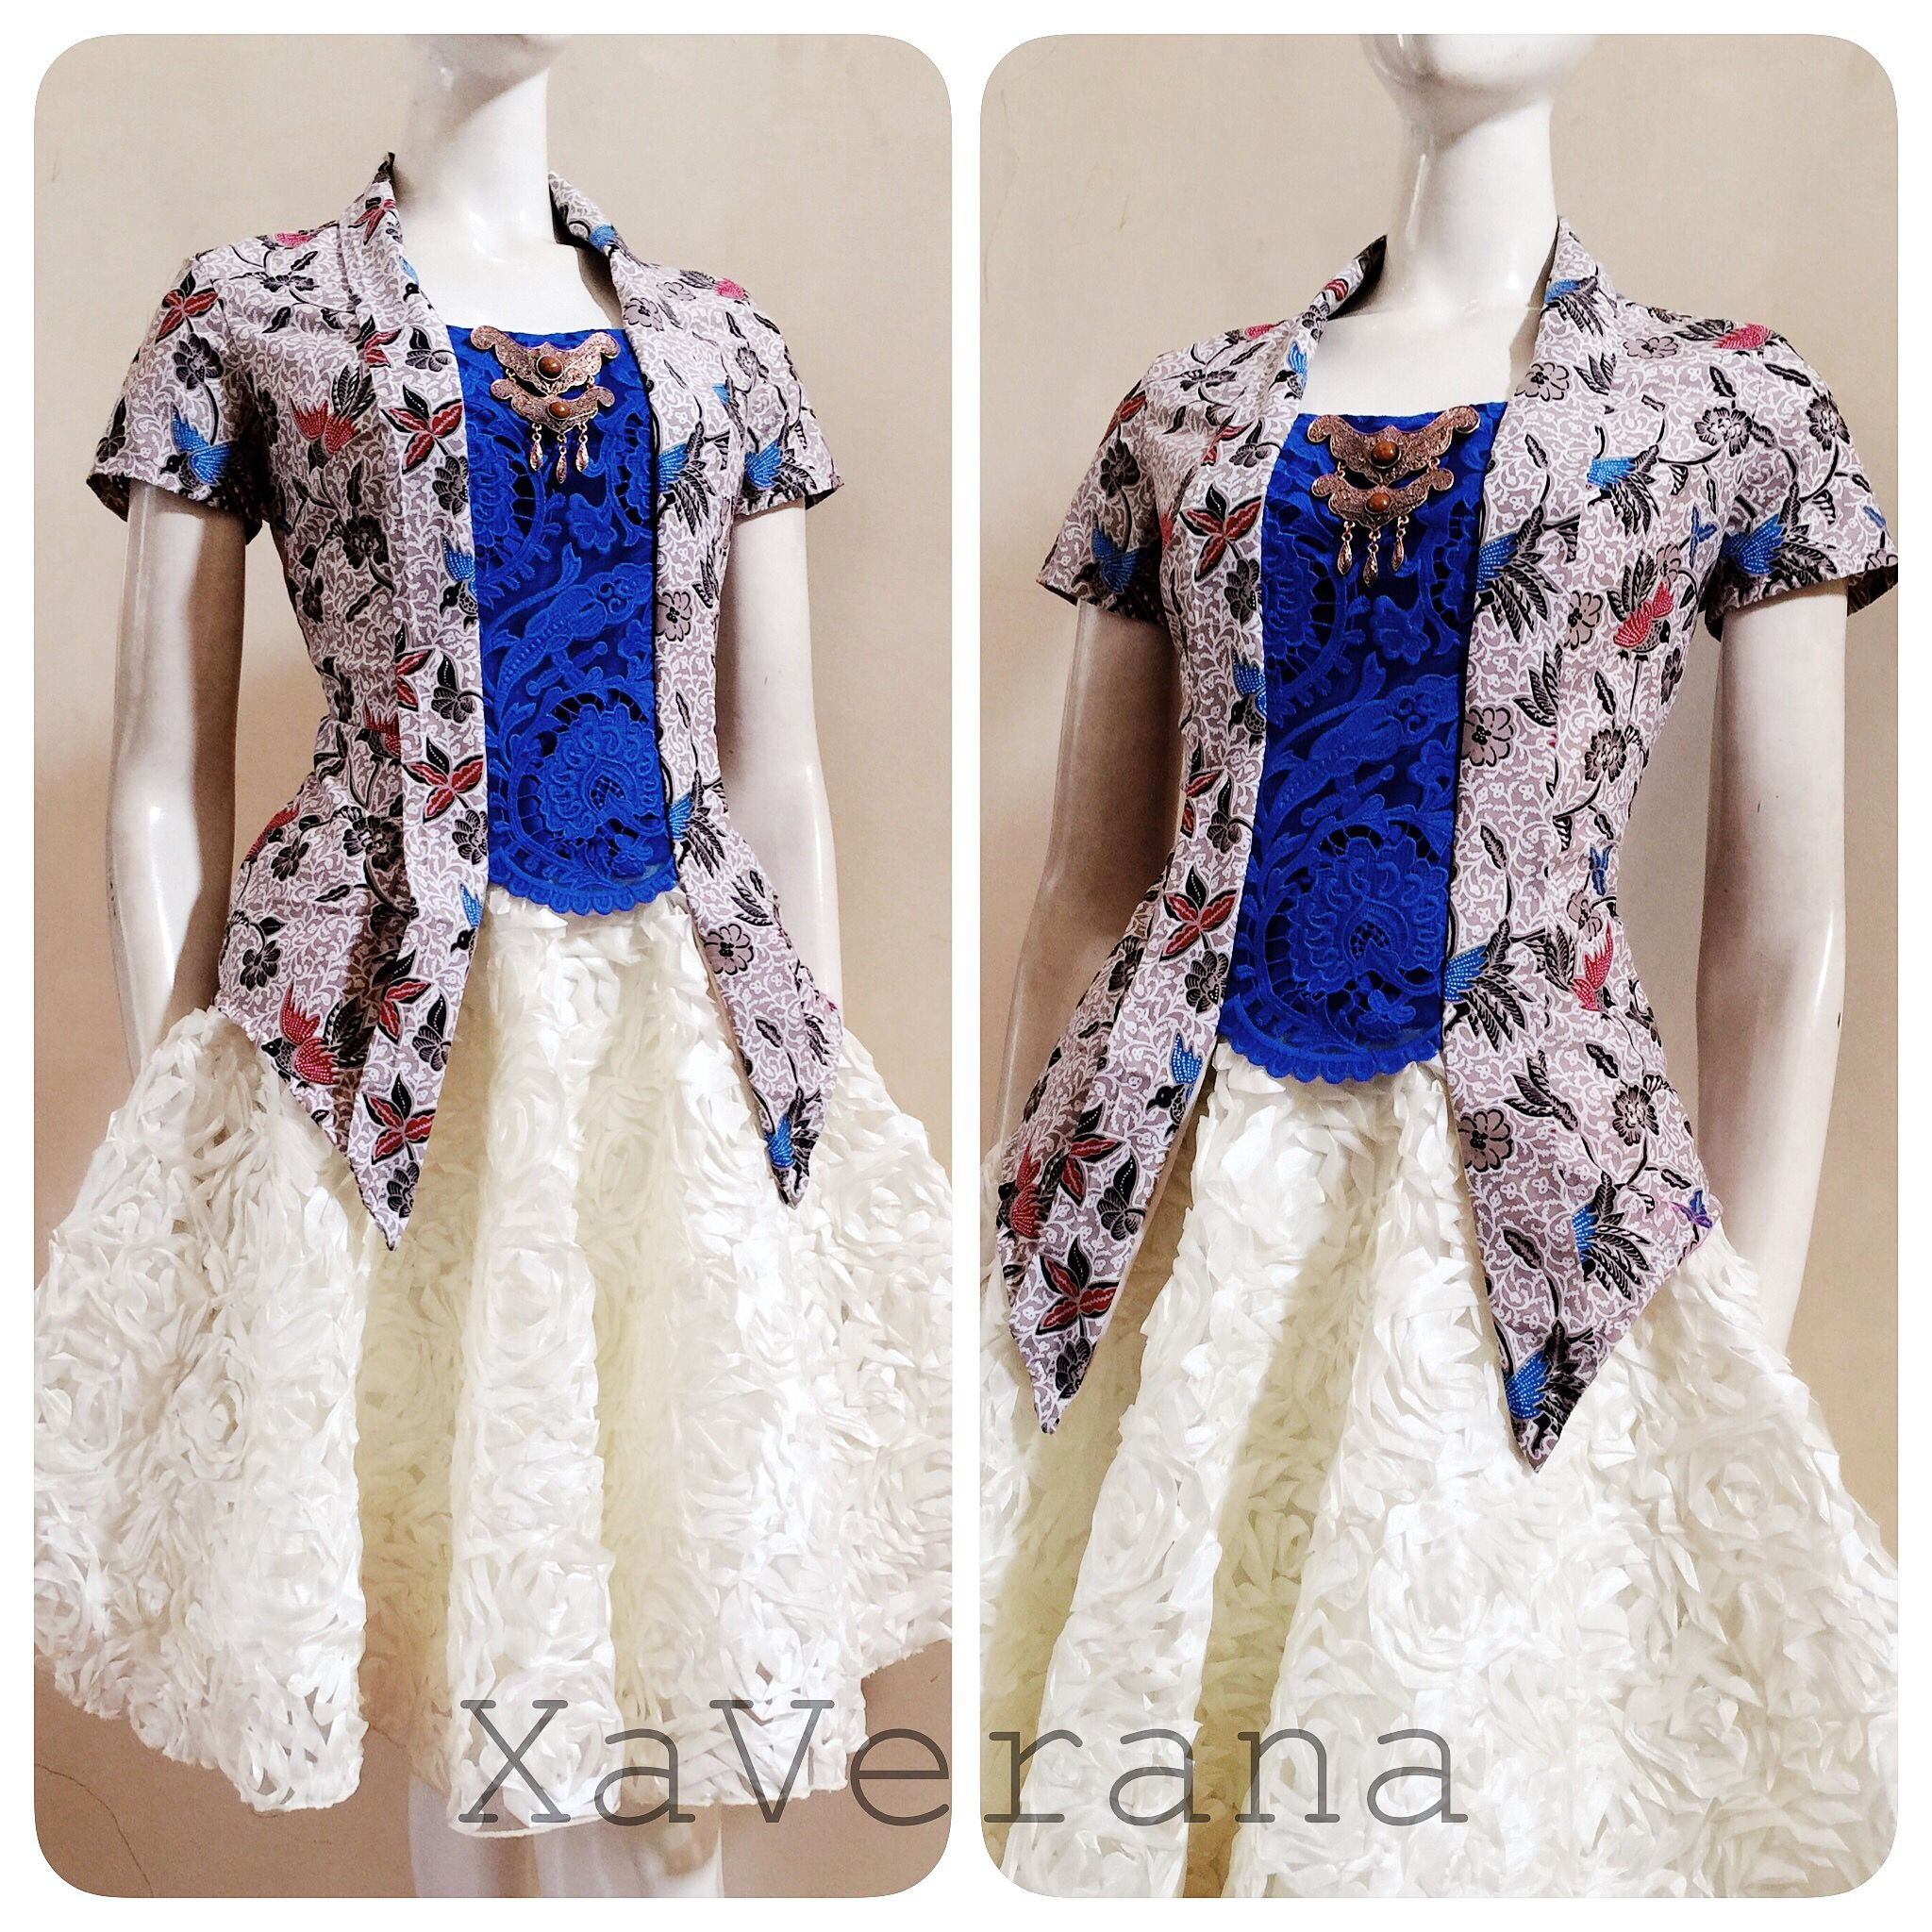 Kebaya Kutubaru See Our Collection At Instagram Xaverana Batik